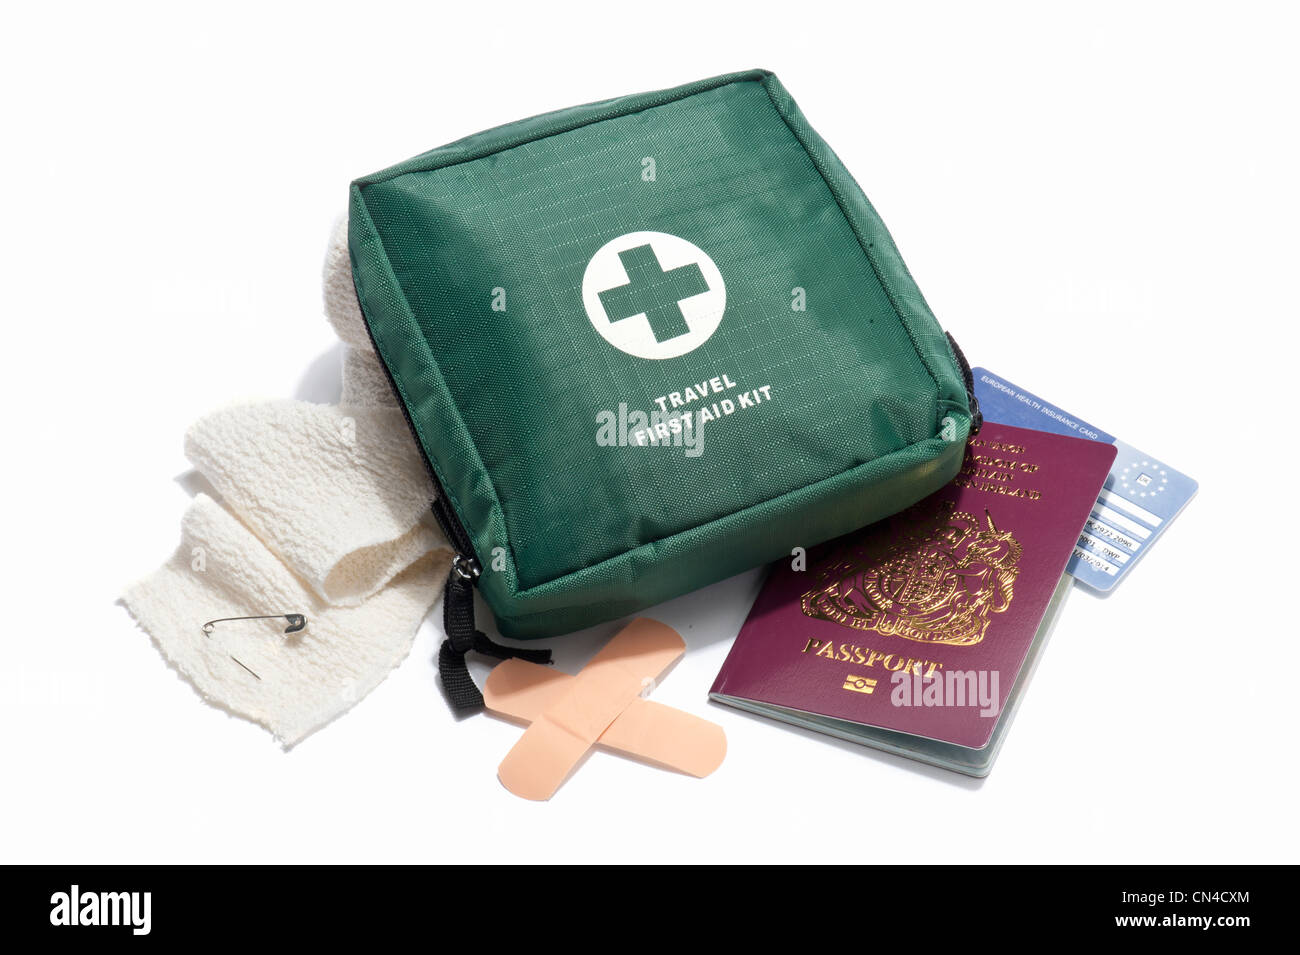 A travel first aid kit, UK passport and European health insurance card - Stock Image